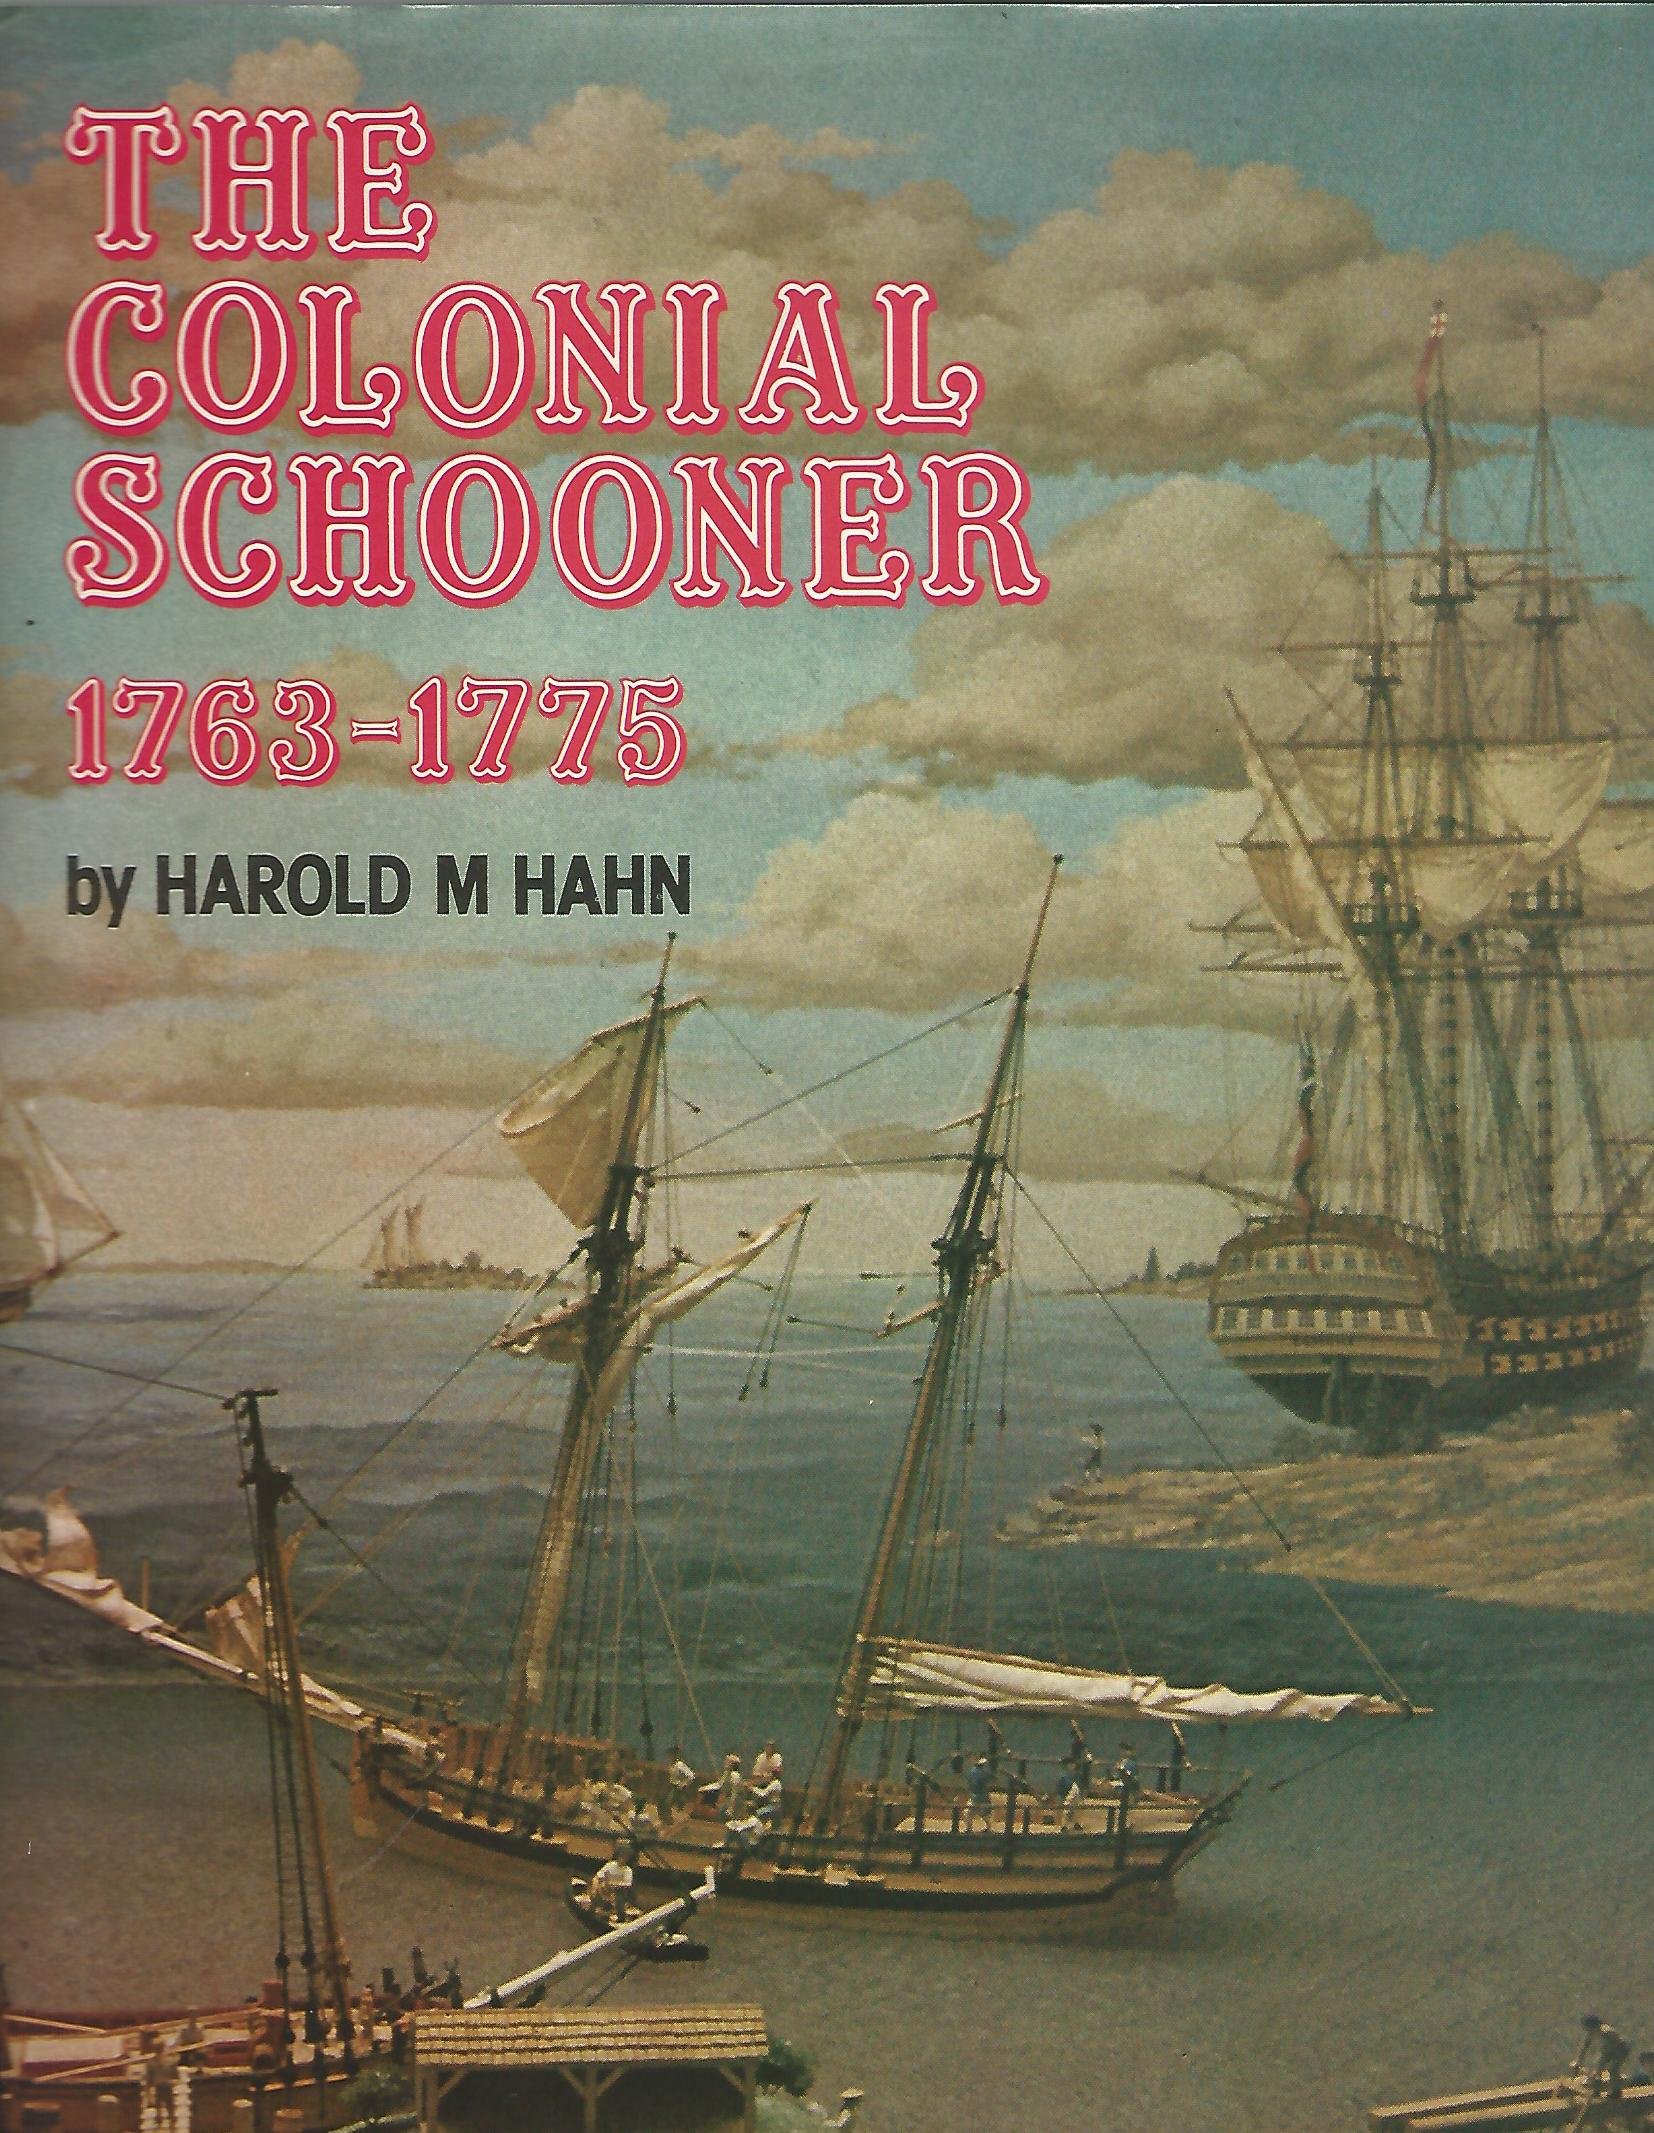 Image for Colonial Schooner 1763-1775